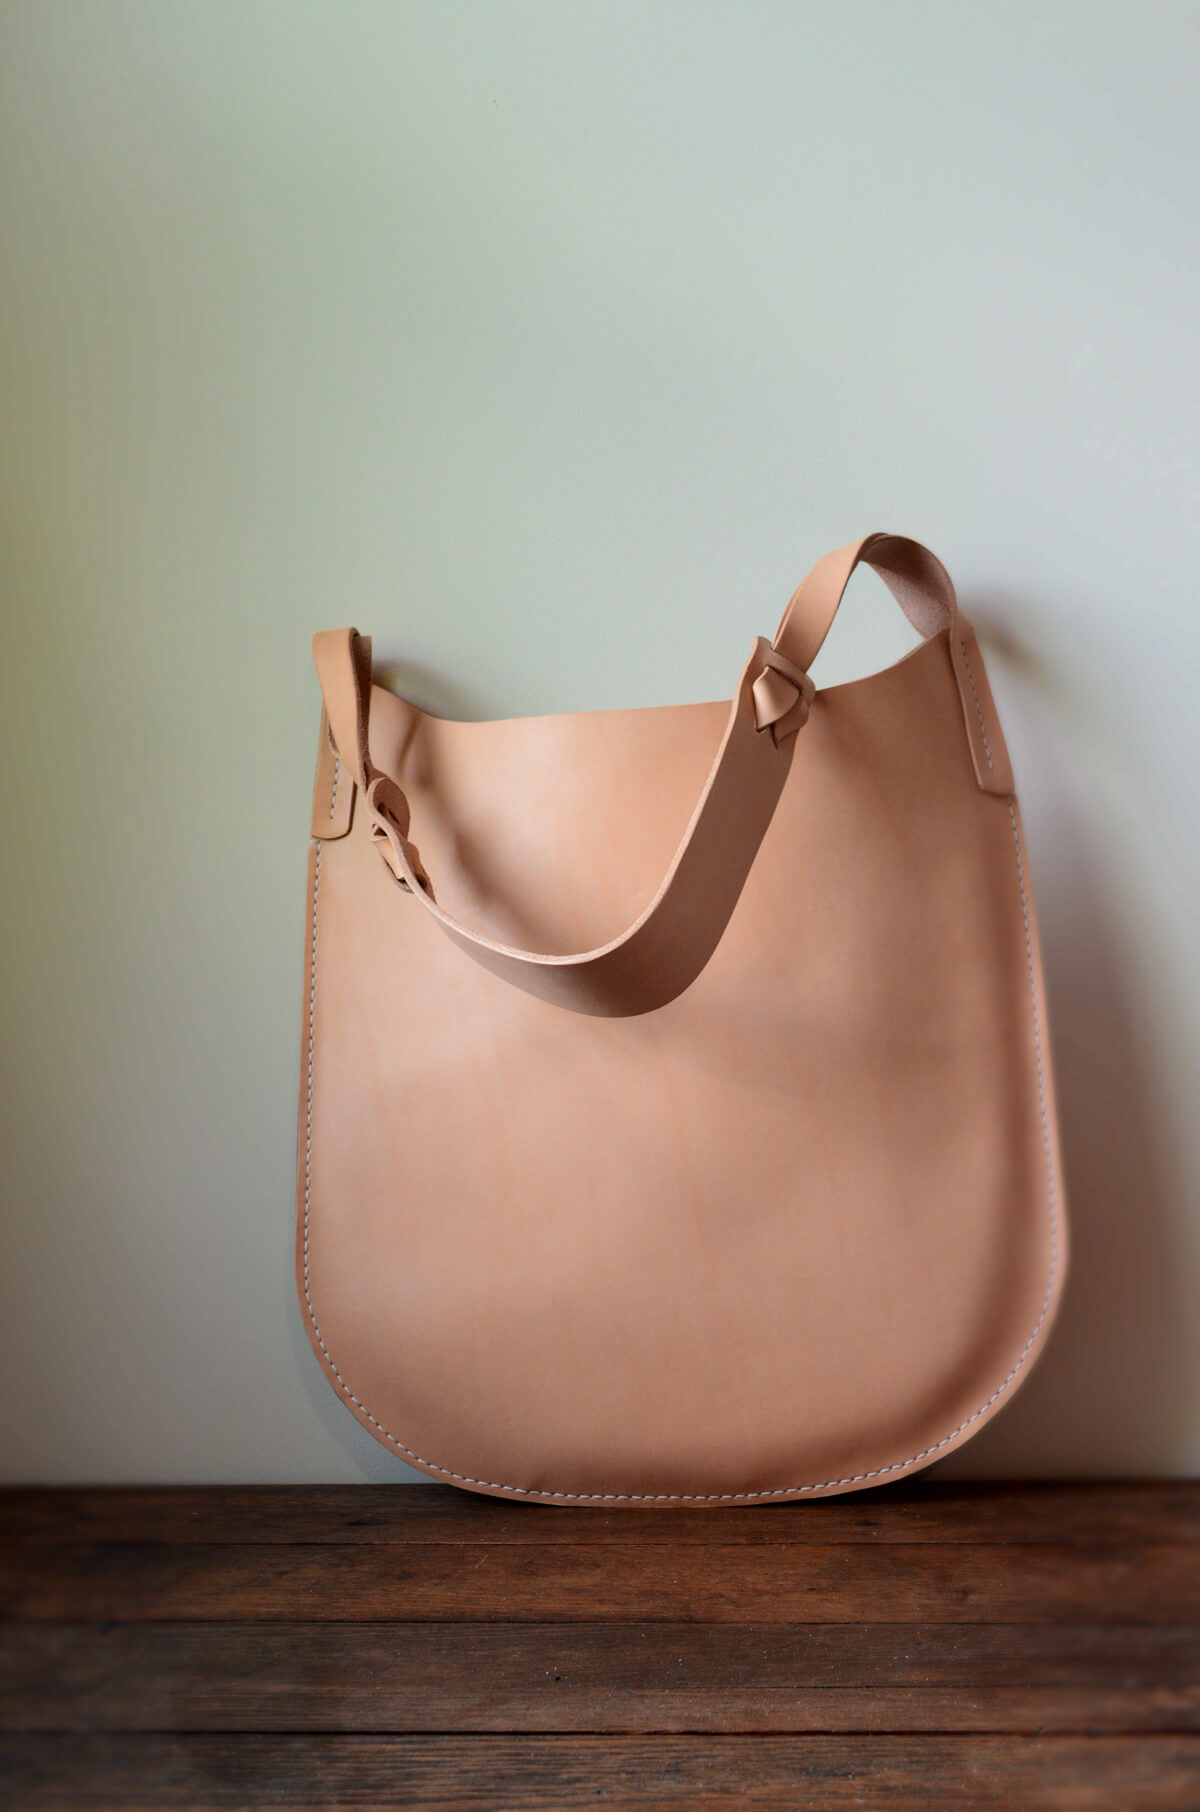 Talouha Leather Goods by Christa Santa Maria